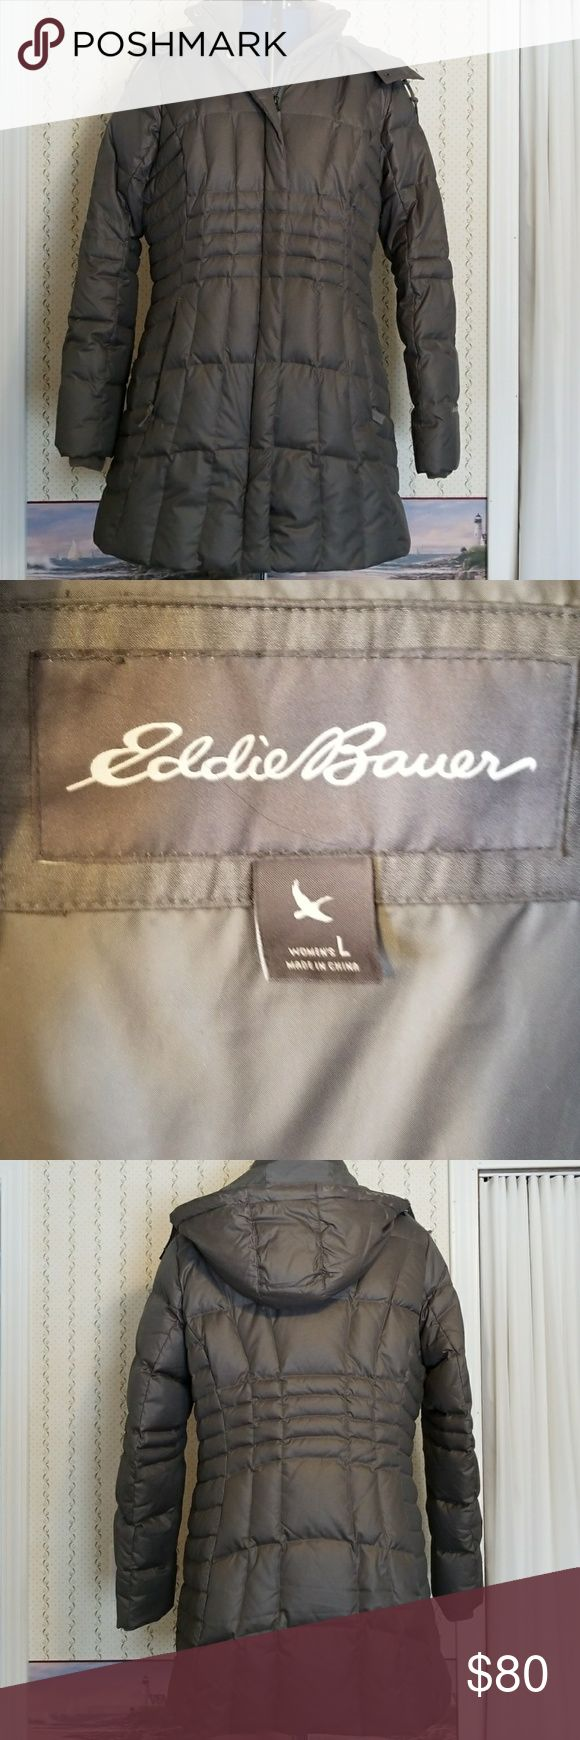 """Down Coat Ladies down coat - excellent condition! 19.75"""" seam to seam at waist, 21.5"""" seam to seam under arms, 32.5"""" from back collar seam to bottom of coat. From non-smoking home. Eddie Bauer Jackets & Coats"""